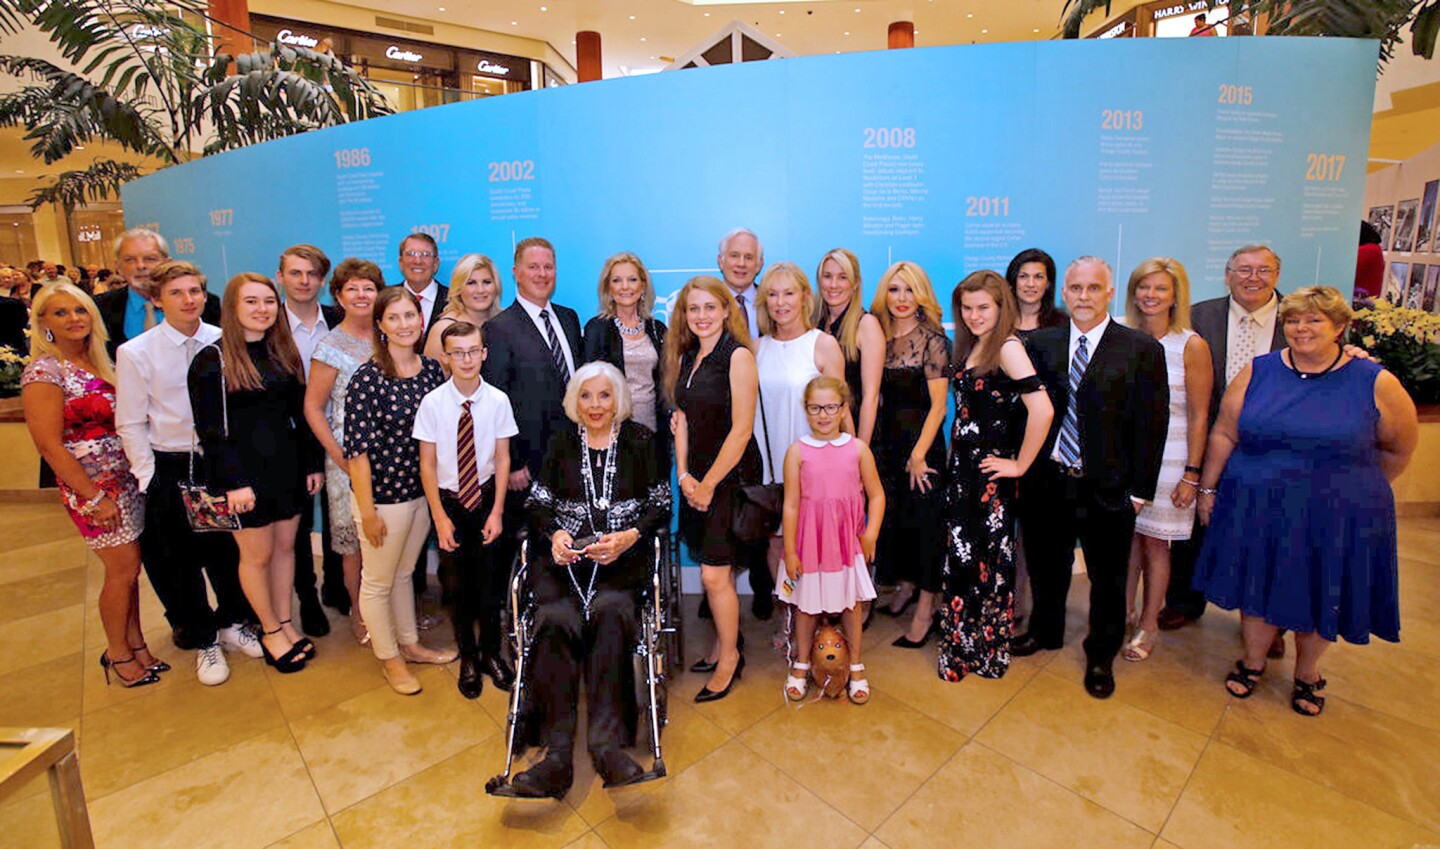 """The extended Segerstrom family celebrated its legacy at the exhibit """"Pioneering Spirit: An American Dream,"""" on display at South Coast Plaza through July 30."""